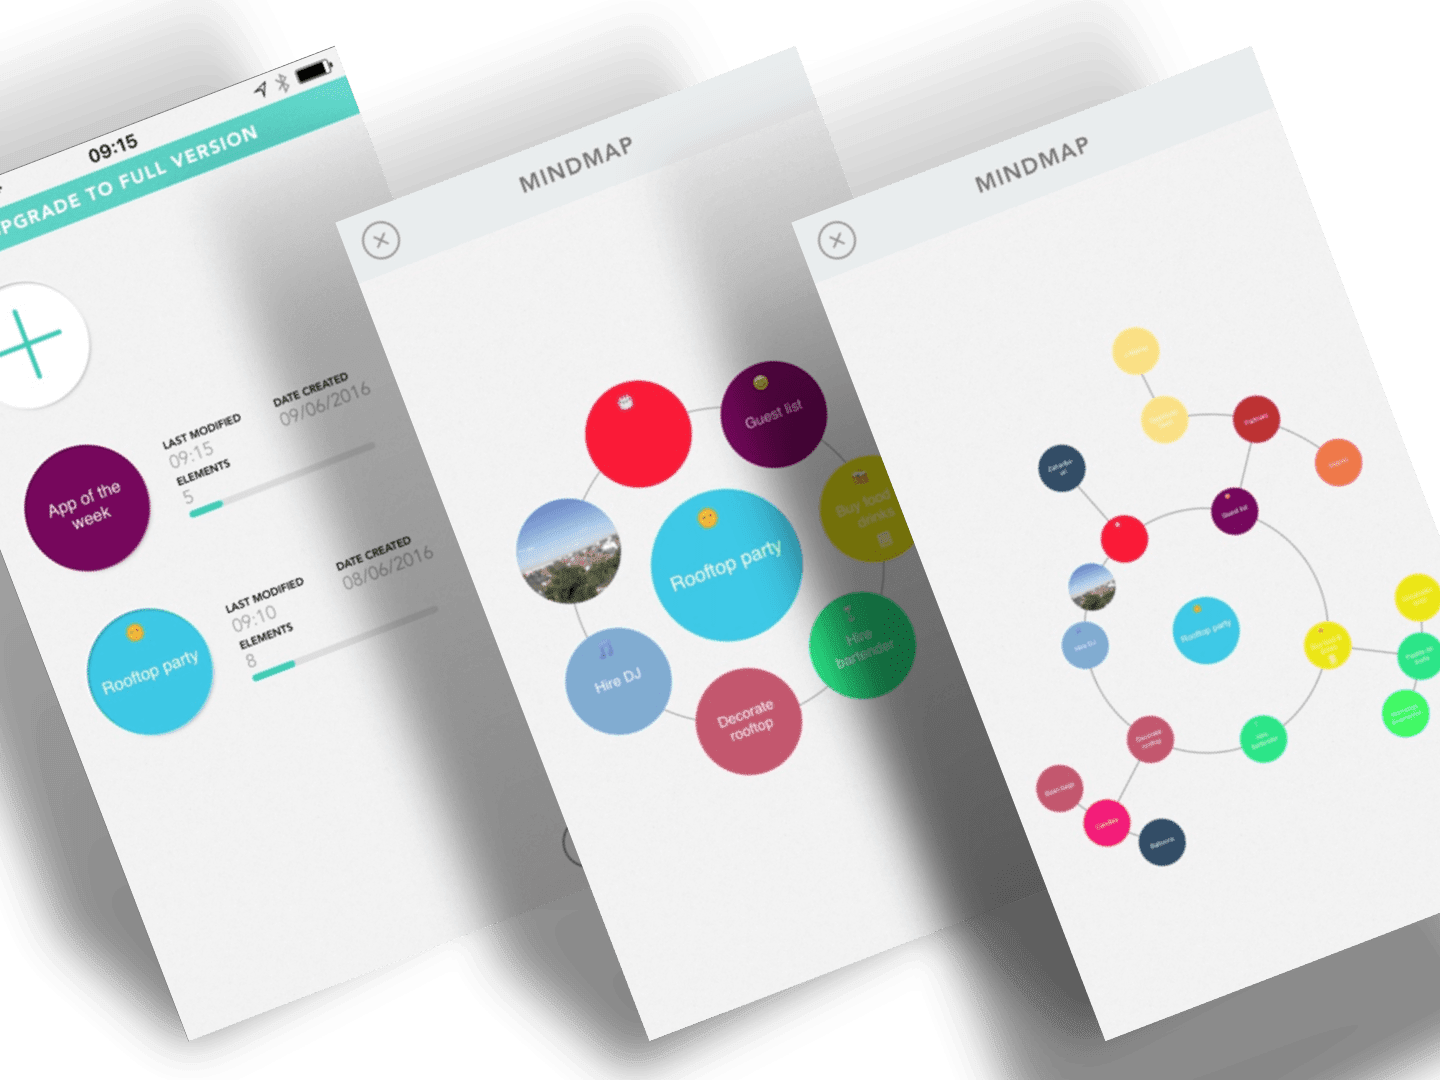 tapptitude App of the Week is Mindly - the mind mapping mobile iOS and Android app